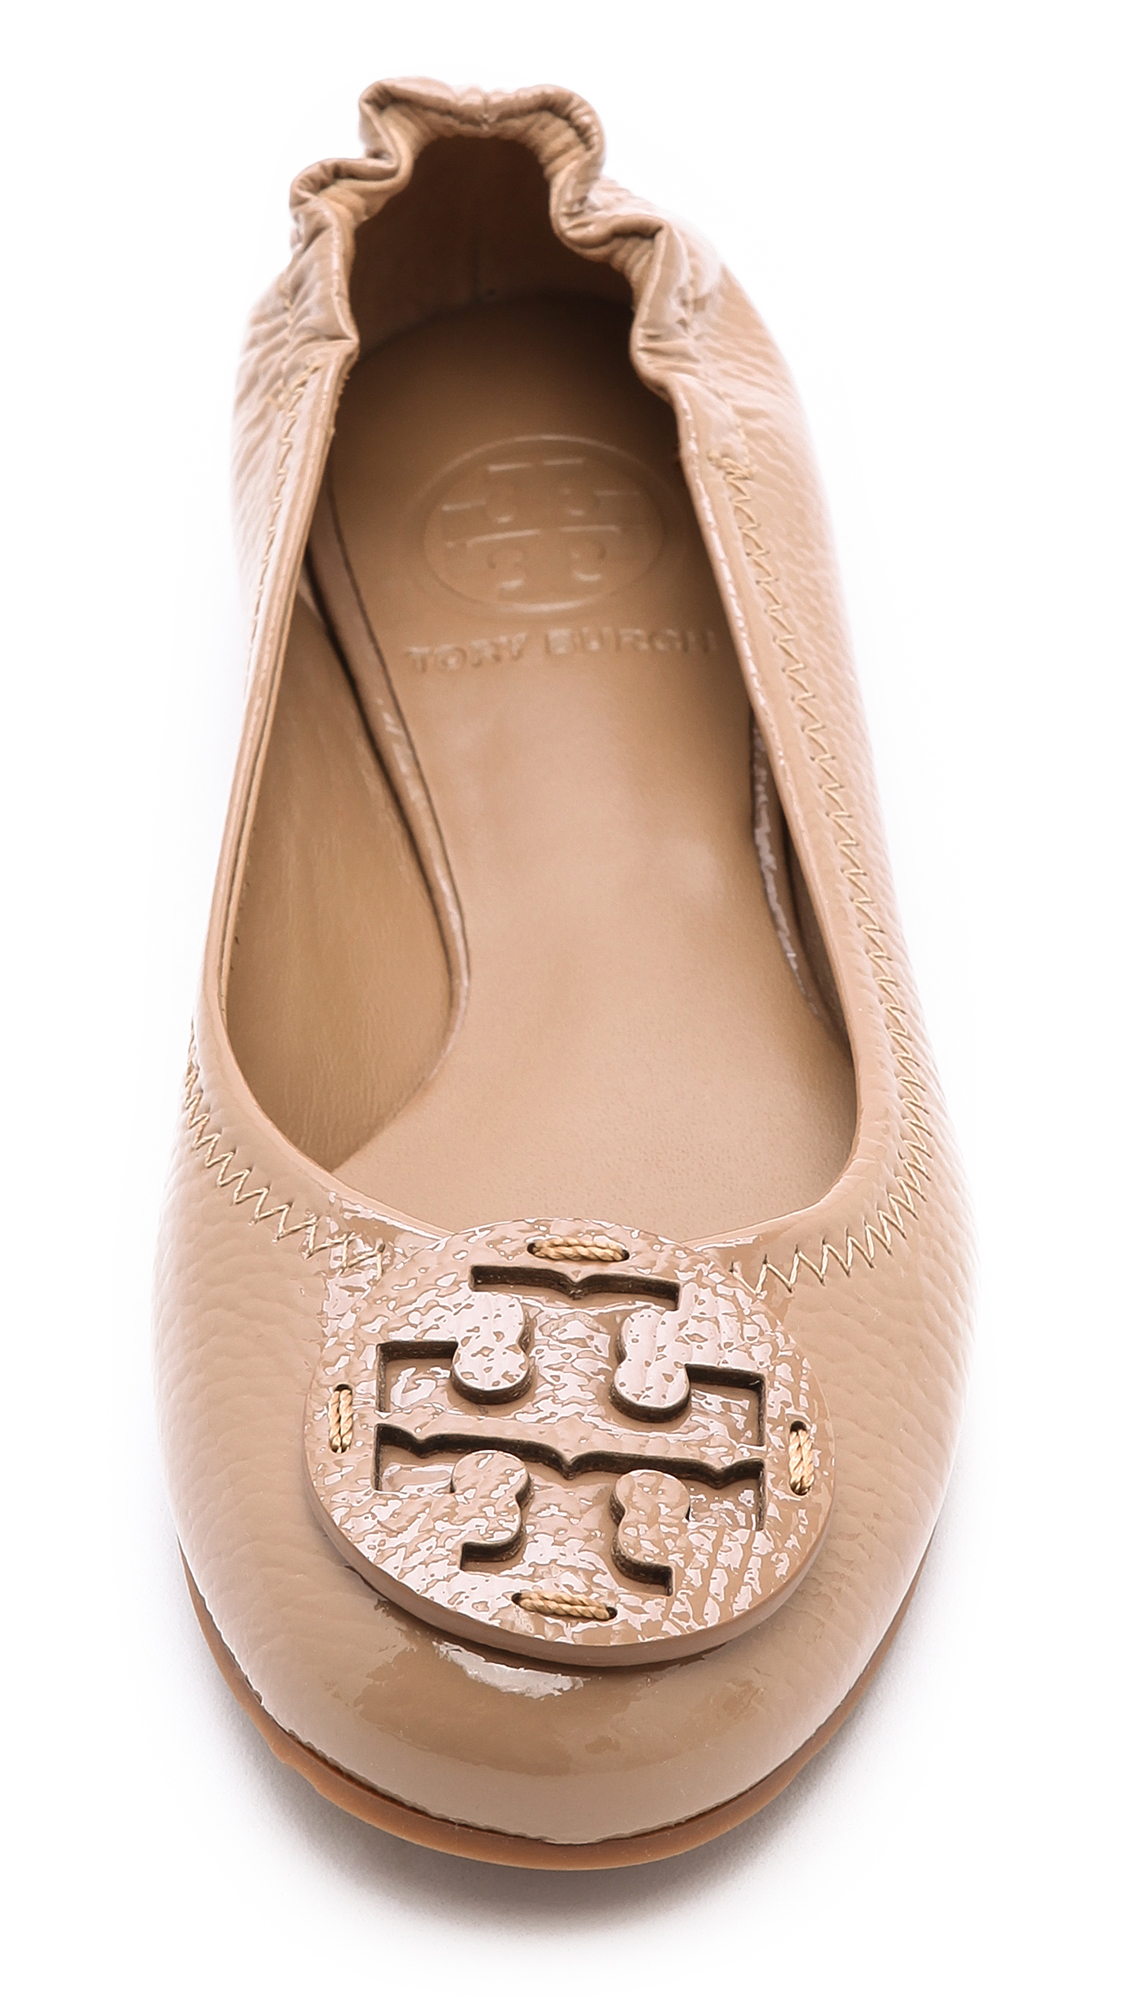 63f7f21c5a50 ... ballet flats printed leather gabriella floral new ivory 27845 fa722   usa lyst tory burch reva flats in natural 1f594 4766d